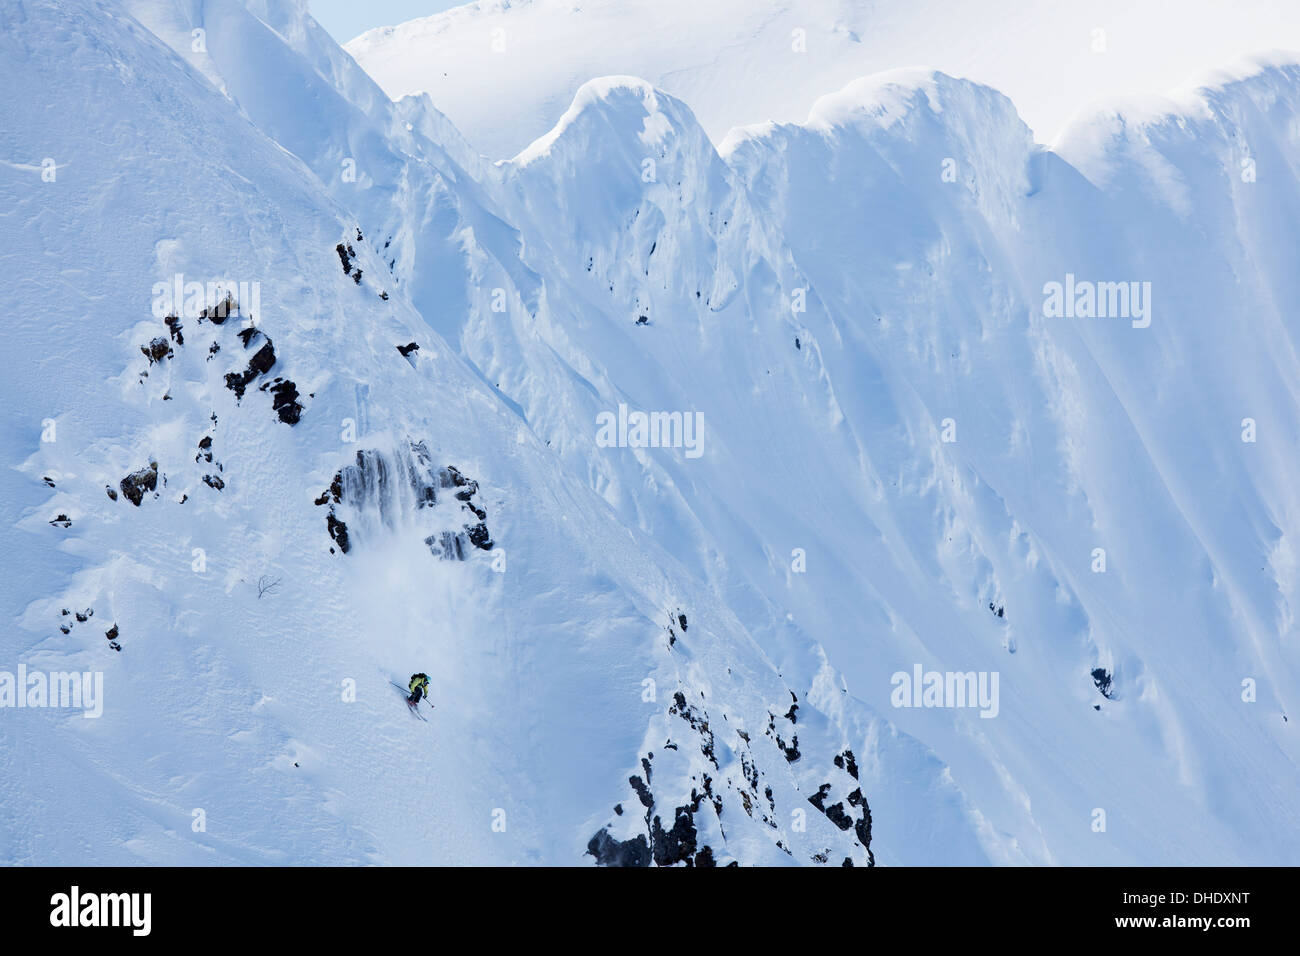 Backcountry Skiing In The Chugach Mountains In Late Winter; Southcentral Alaska, United States Of America - Stock Image